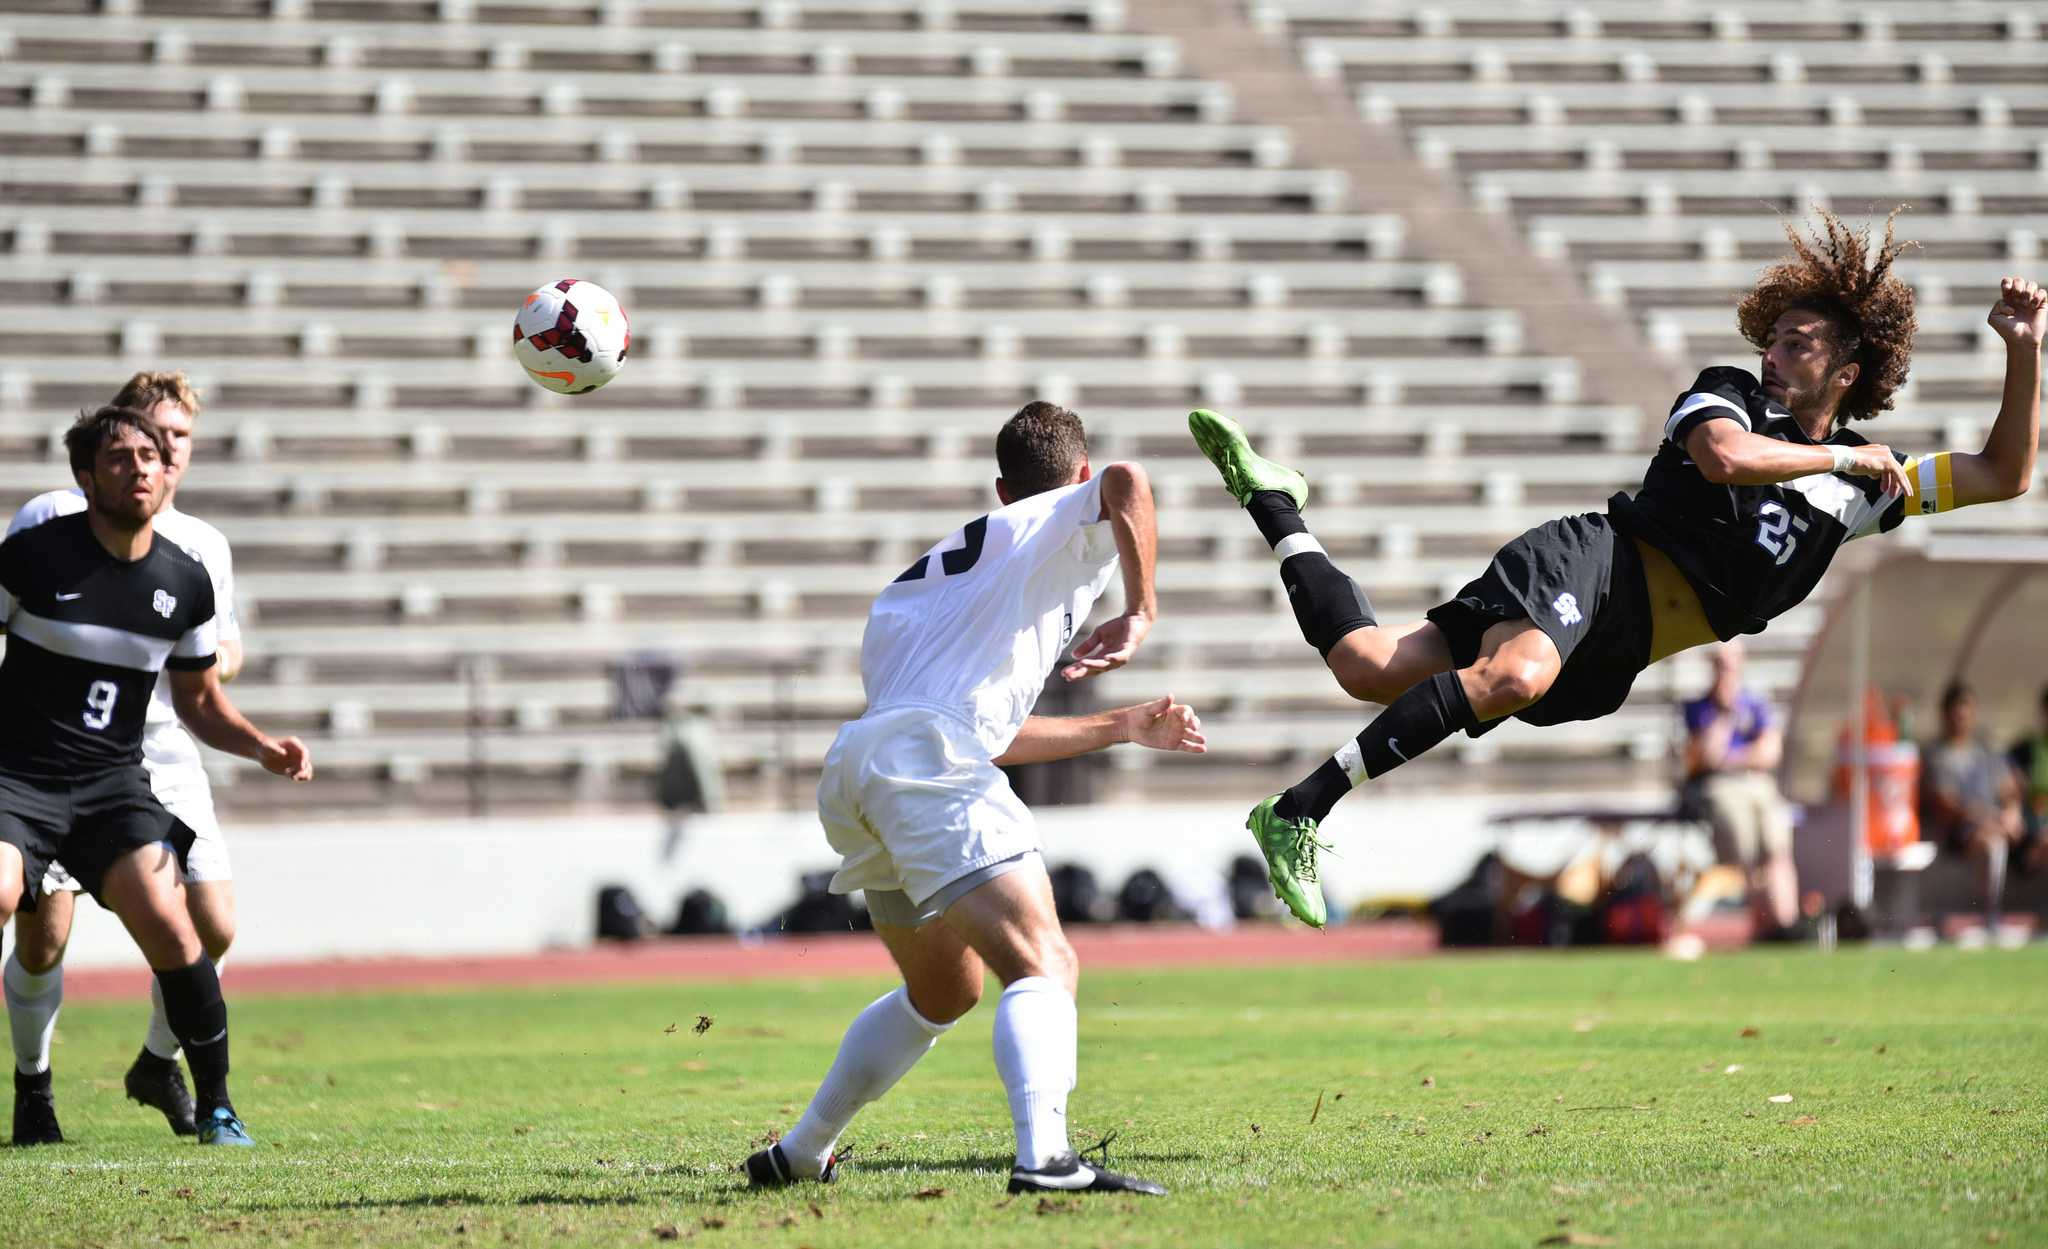 Max Talbert (25) defender for SF State, heads the ball toward the goal during first half against Concordia University in 1-0 win at SF State's Cox Stadium Sunday, Sep.6. (Qing Huang/Xpress)